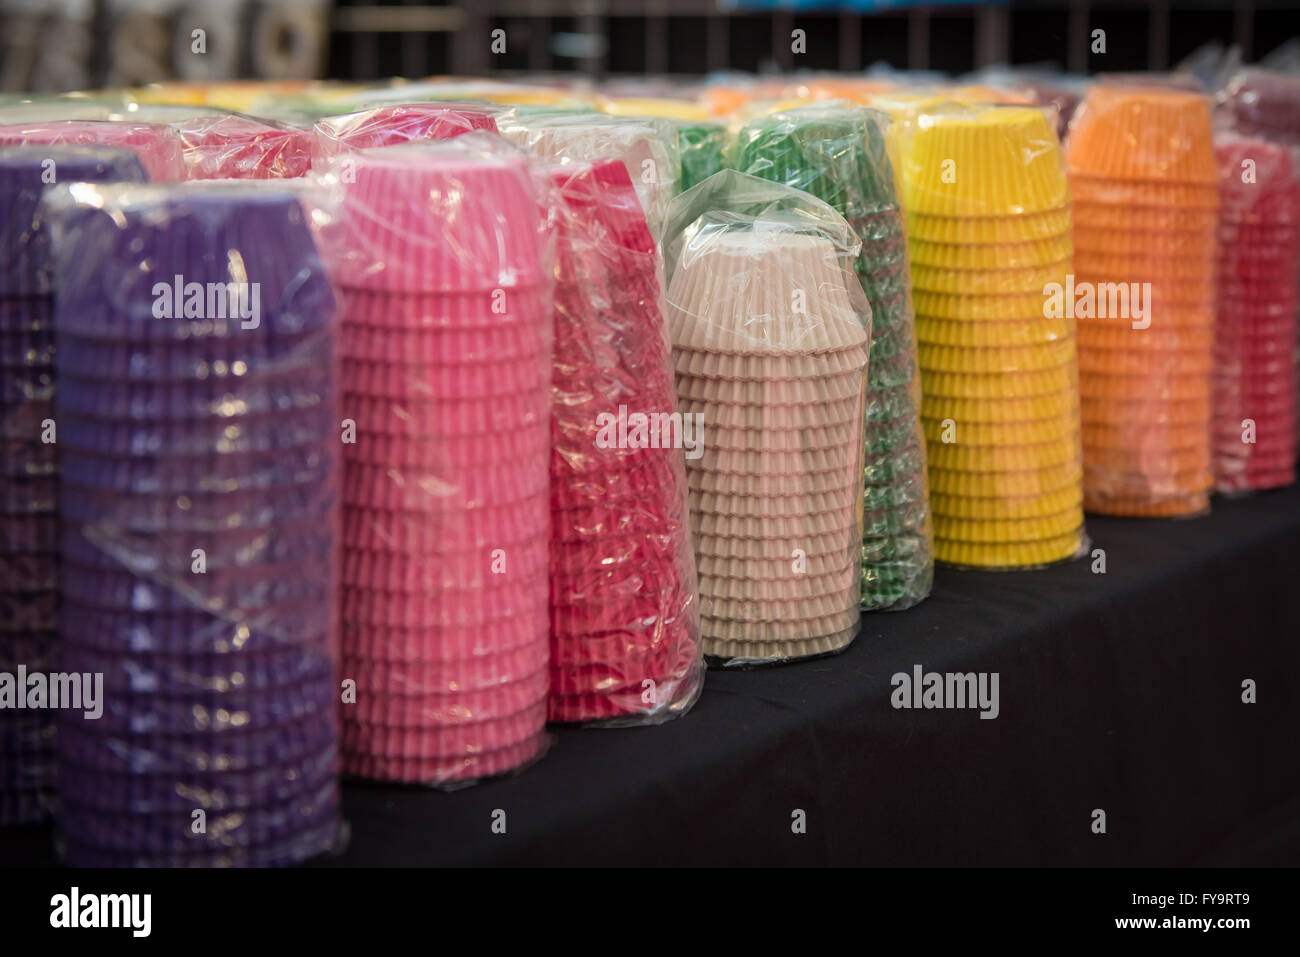 Giant Cups Stock Photos Amp Giant Cups Stock Images Alamy